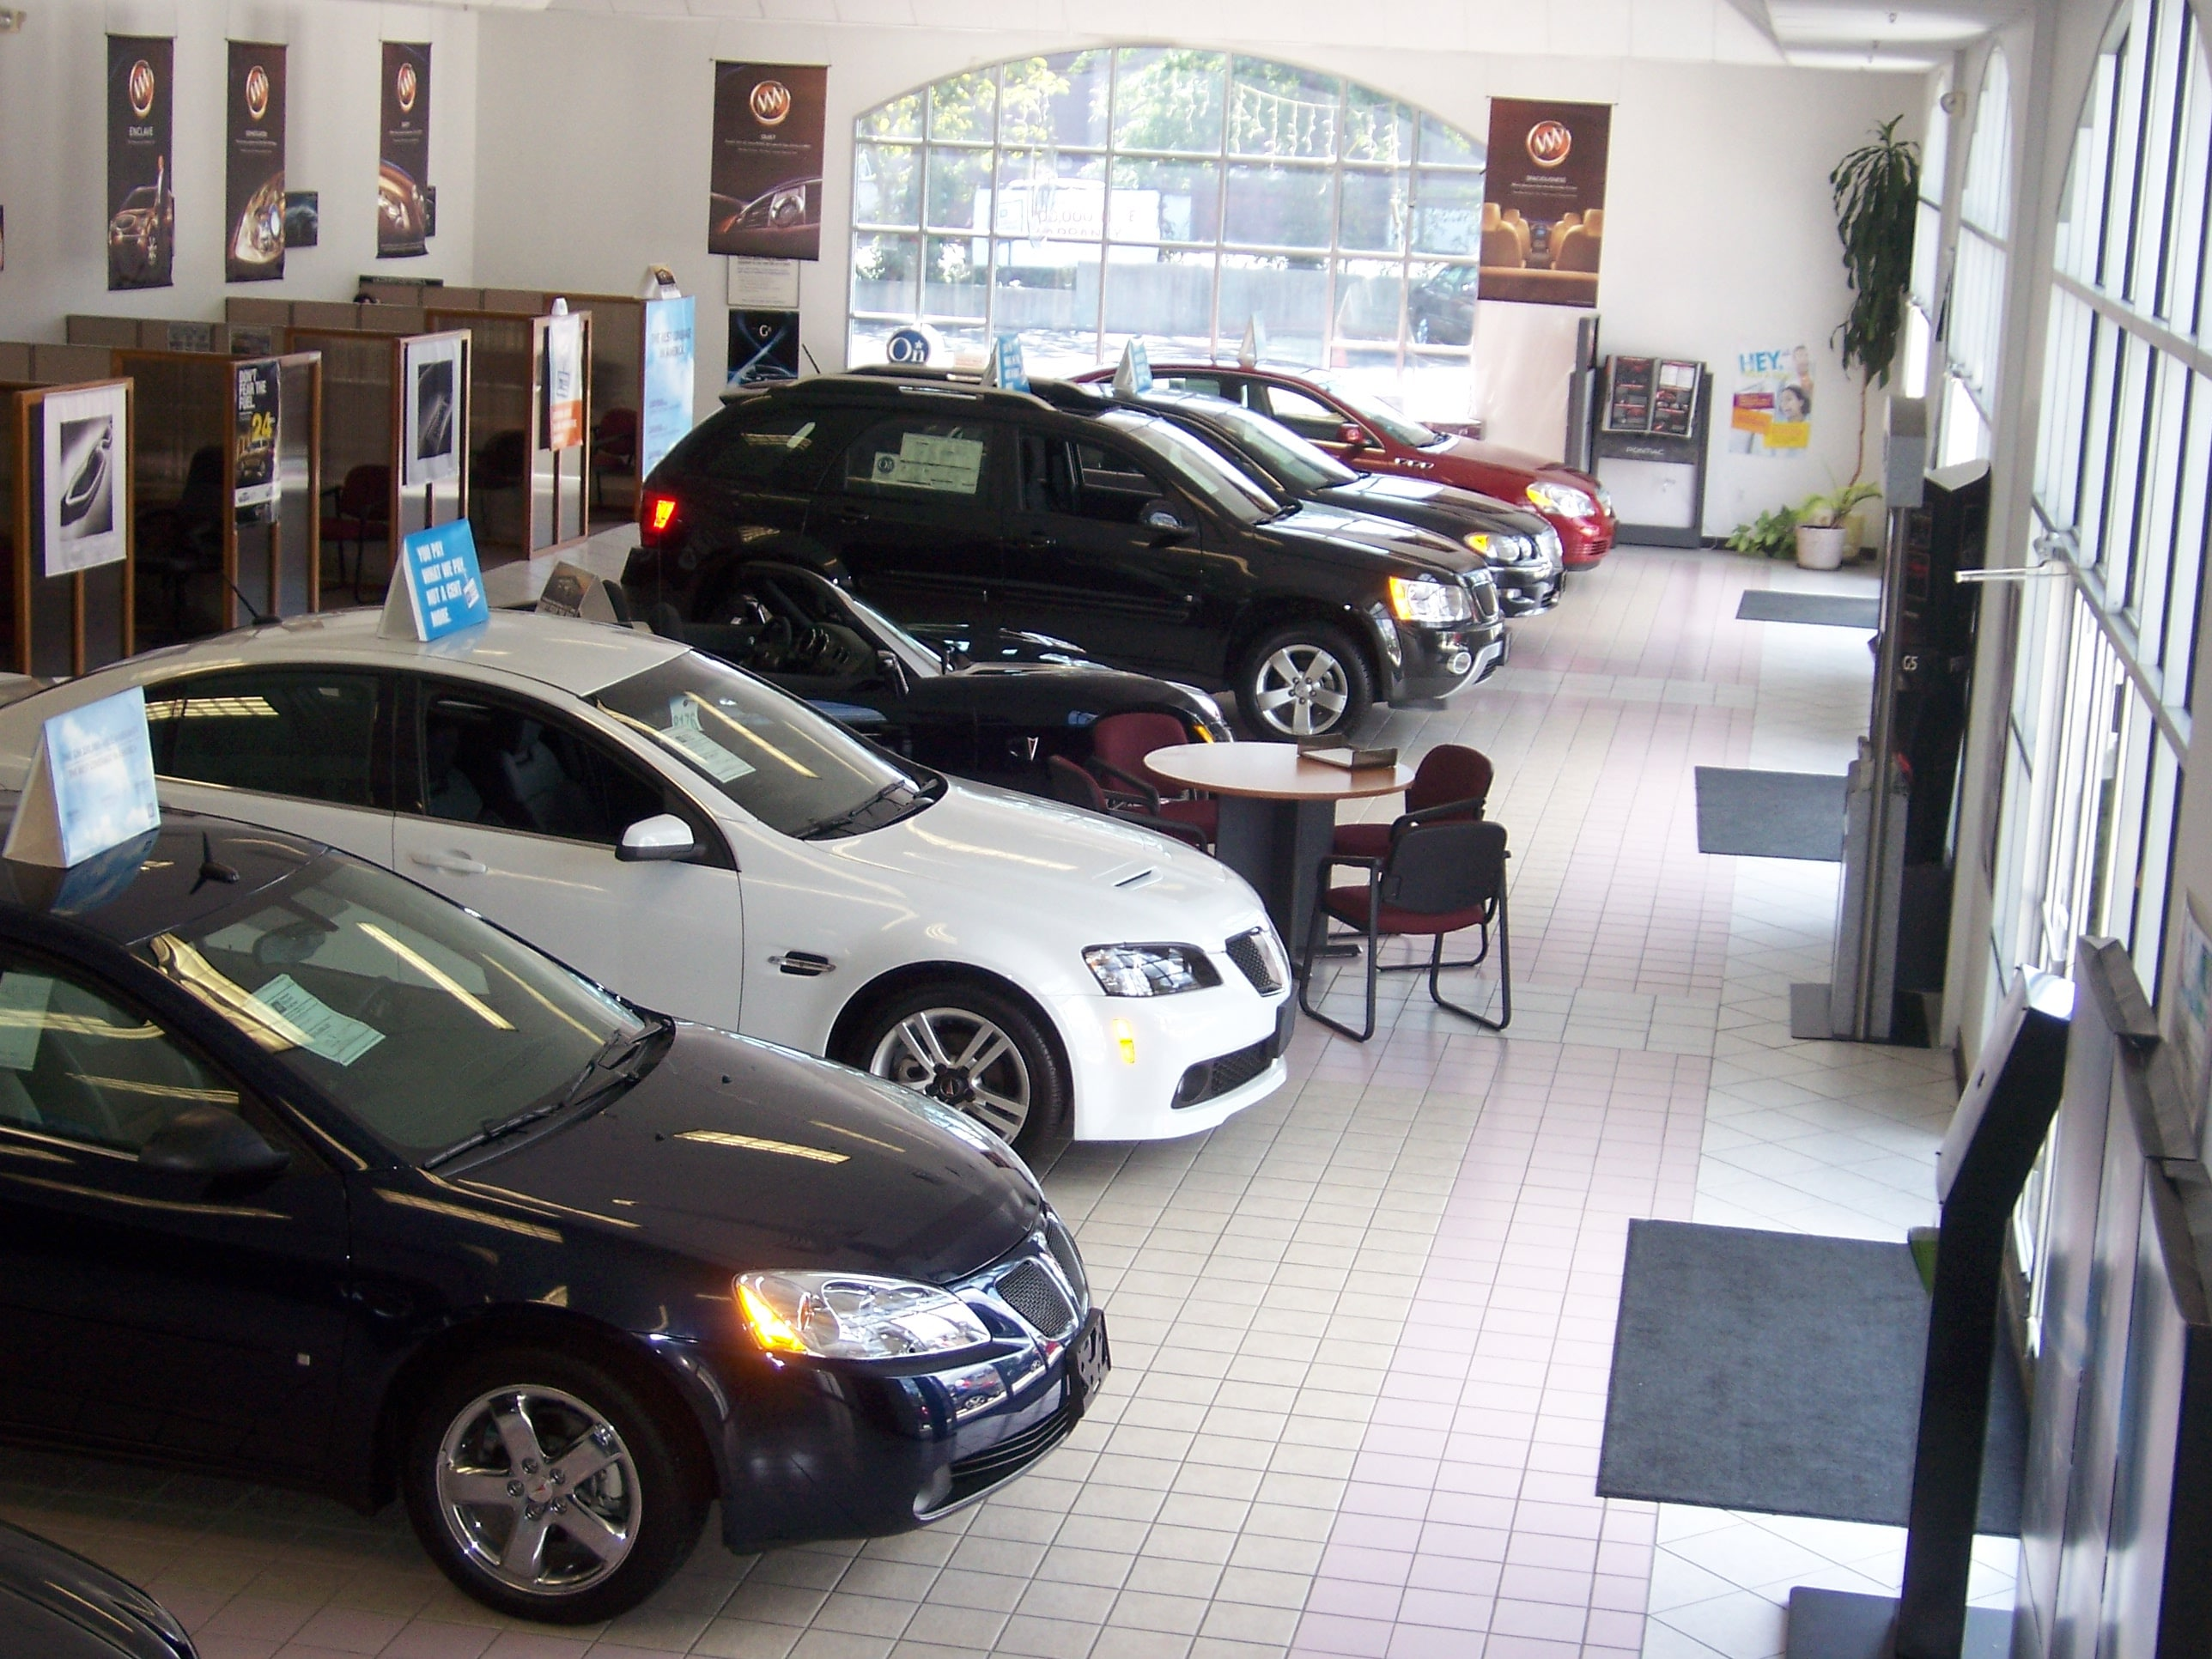 g j pre owned vehicle fairfield ct used car dealer auto service. Black Bedroom Furniture Sets. Home Design Ideas